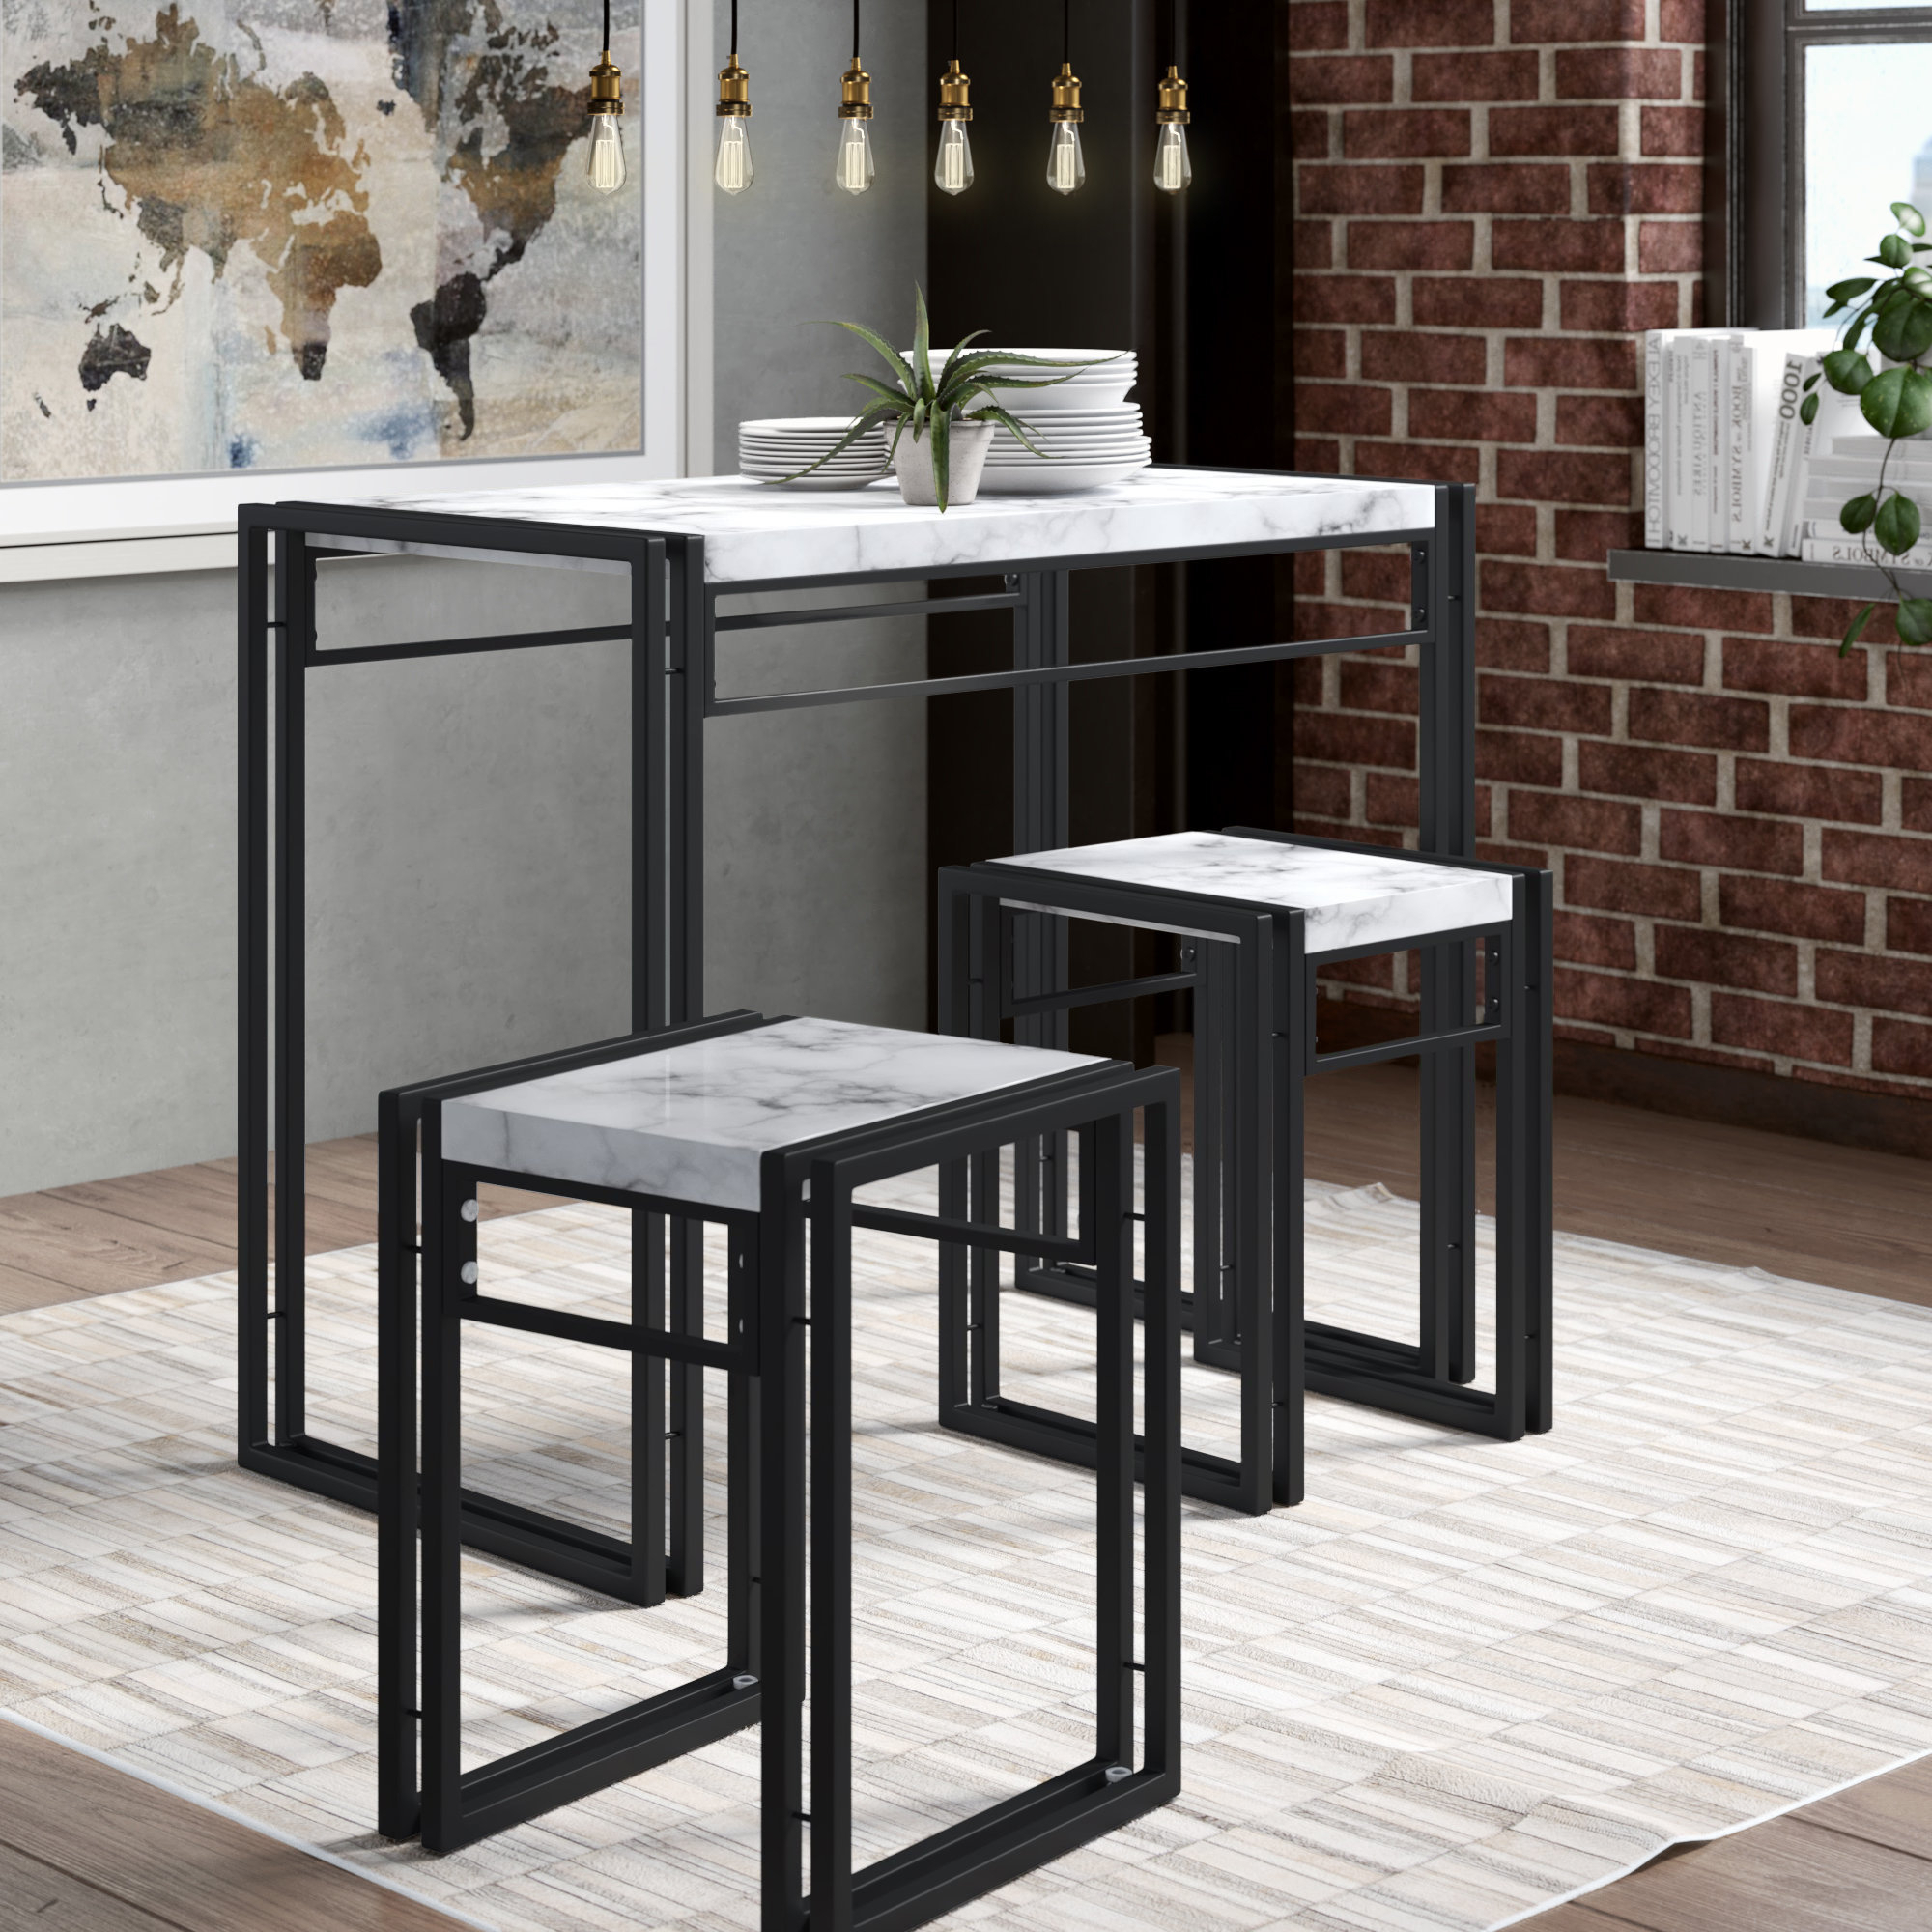 Debby Small Space 3 Piece Dining Sets With Regard To Newest Debby Small Space 3 Piece Dining Set (View 1 of 25)